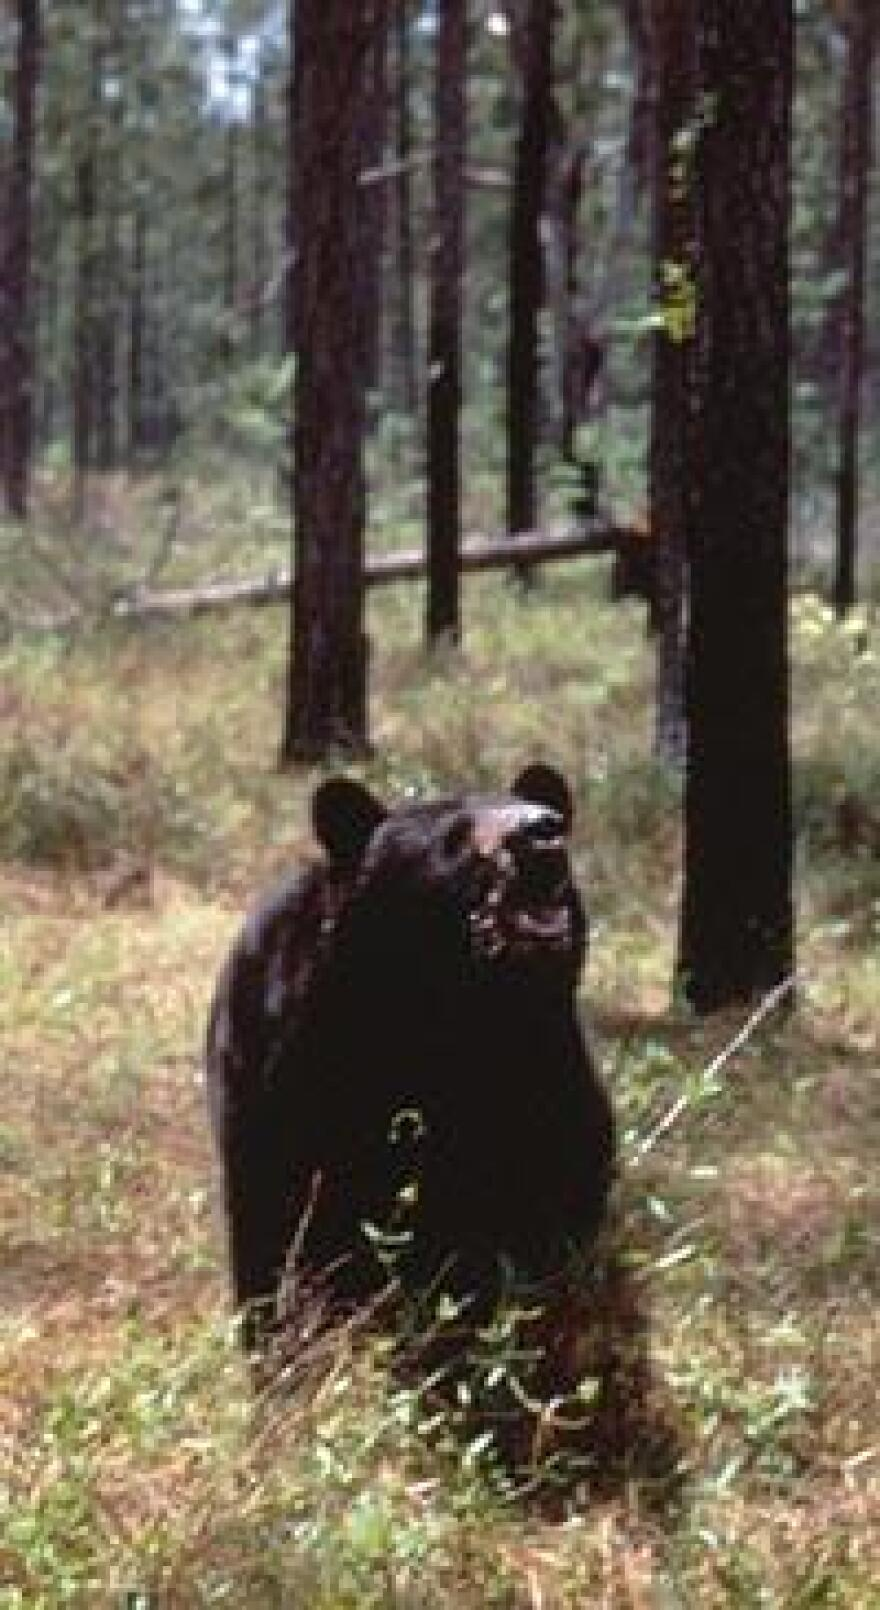 A two-day hunting season for Florida black bears claimed 304 of the iconic animals. Democratic lawmakers are calling for a 10-year hunting moratorium.